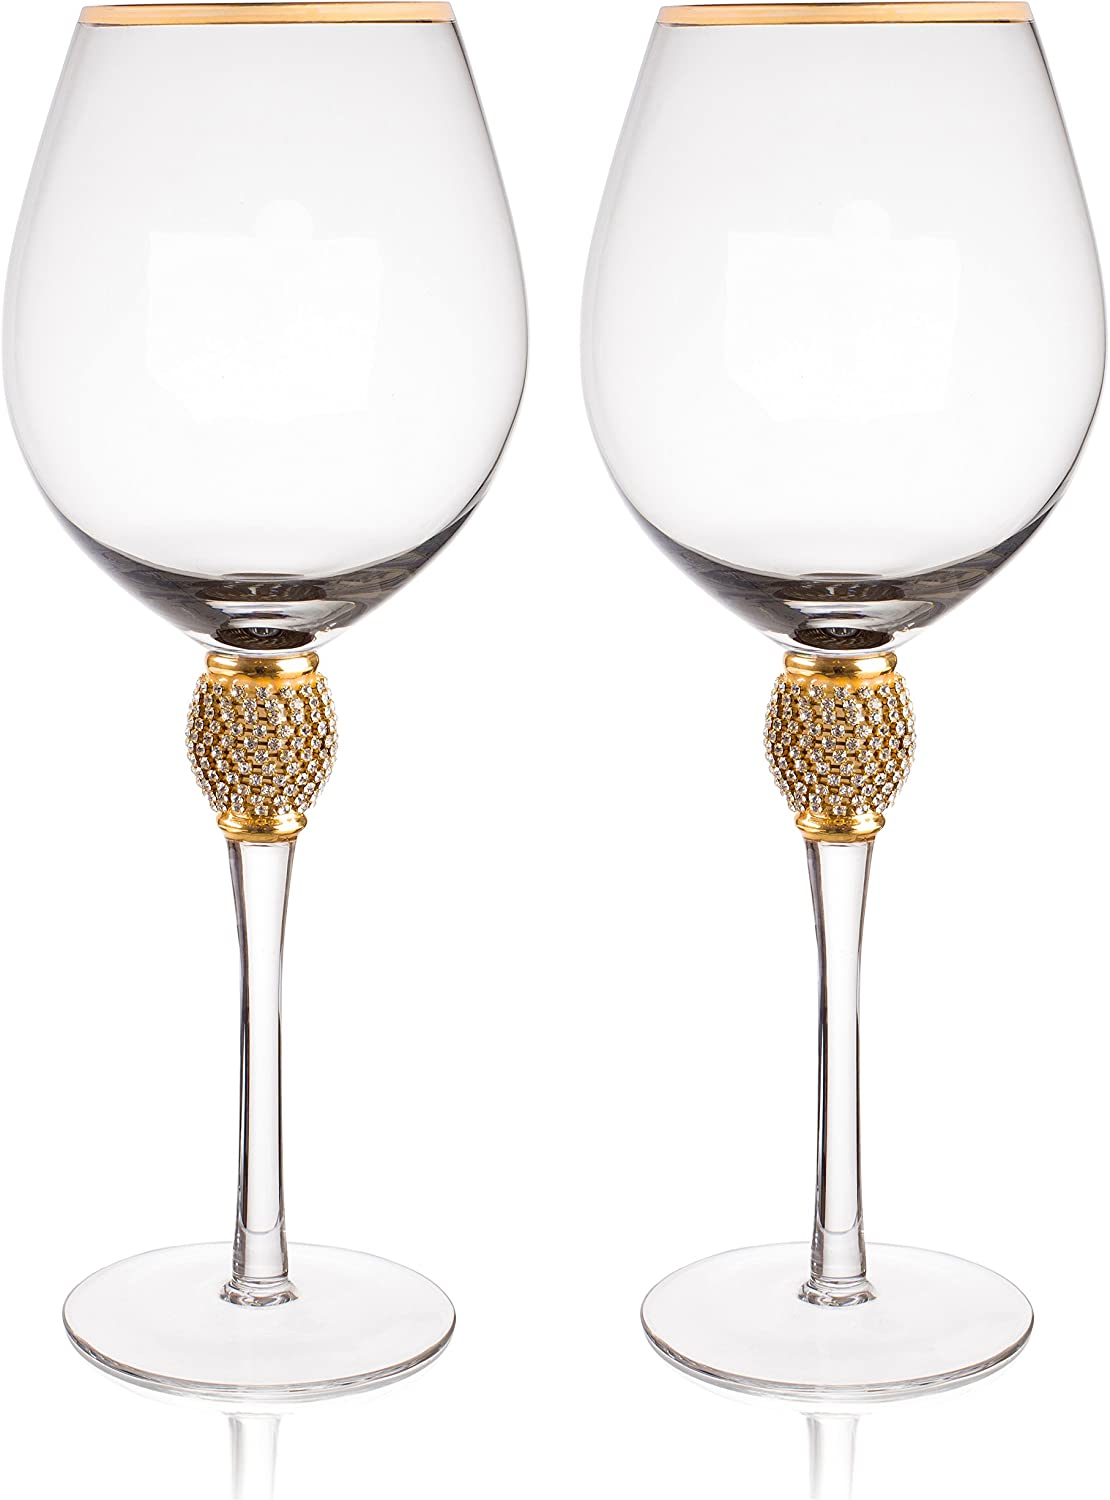 "Trinkware Gold Rimmed Wine Glasses Set of 2 - Rhinestone Champagne Flutes""DIAMOND"" Studded - Long Stem, 16oz, 10-inches Tall – Elegant Glassware And Stemware"